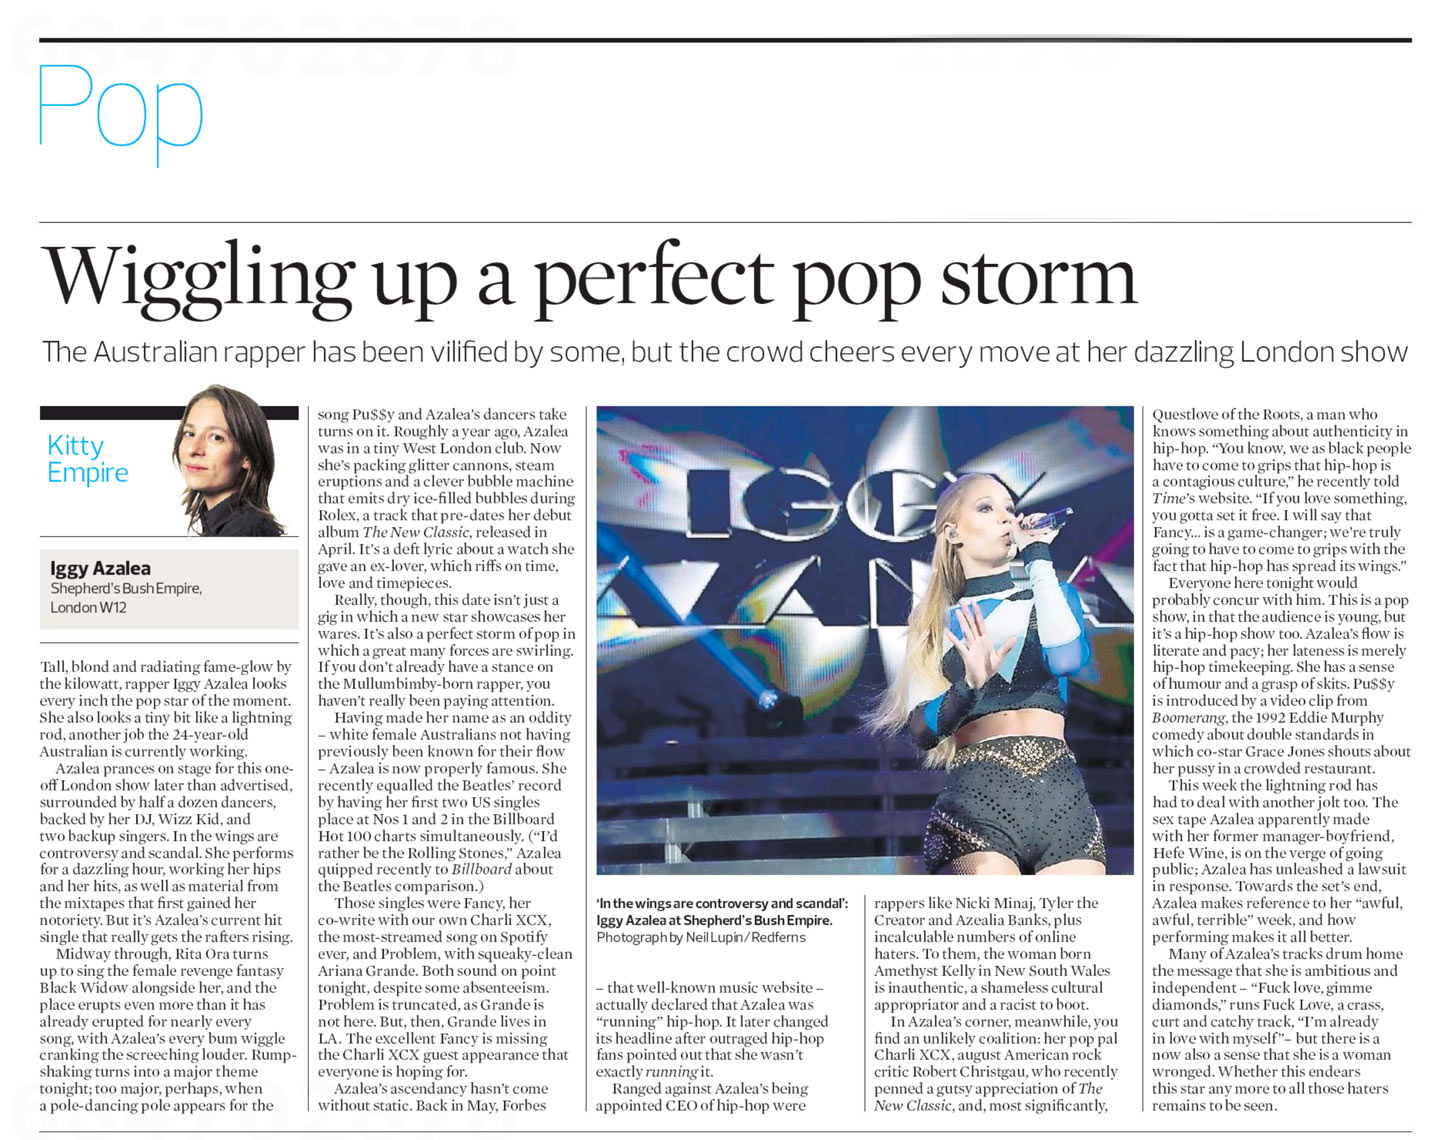 Iggy-Azalea-21-9-14-Observer-New-Review.jpg